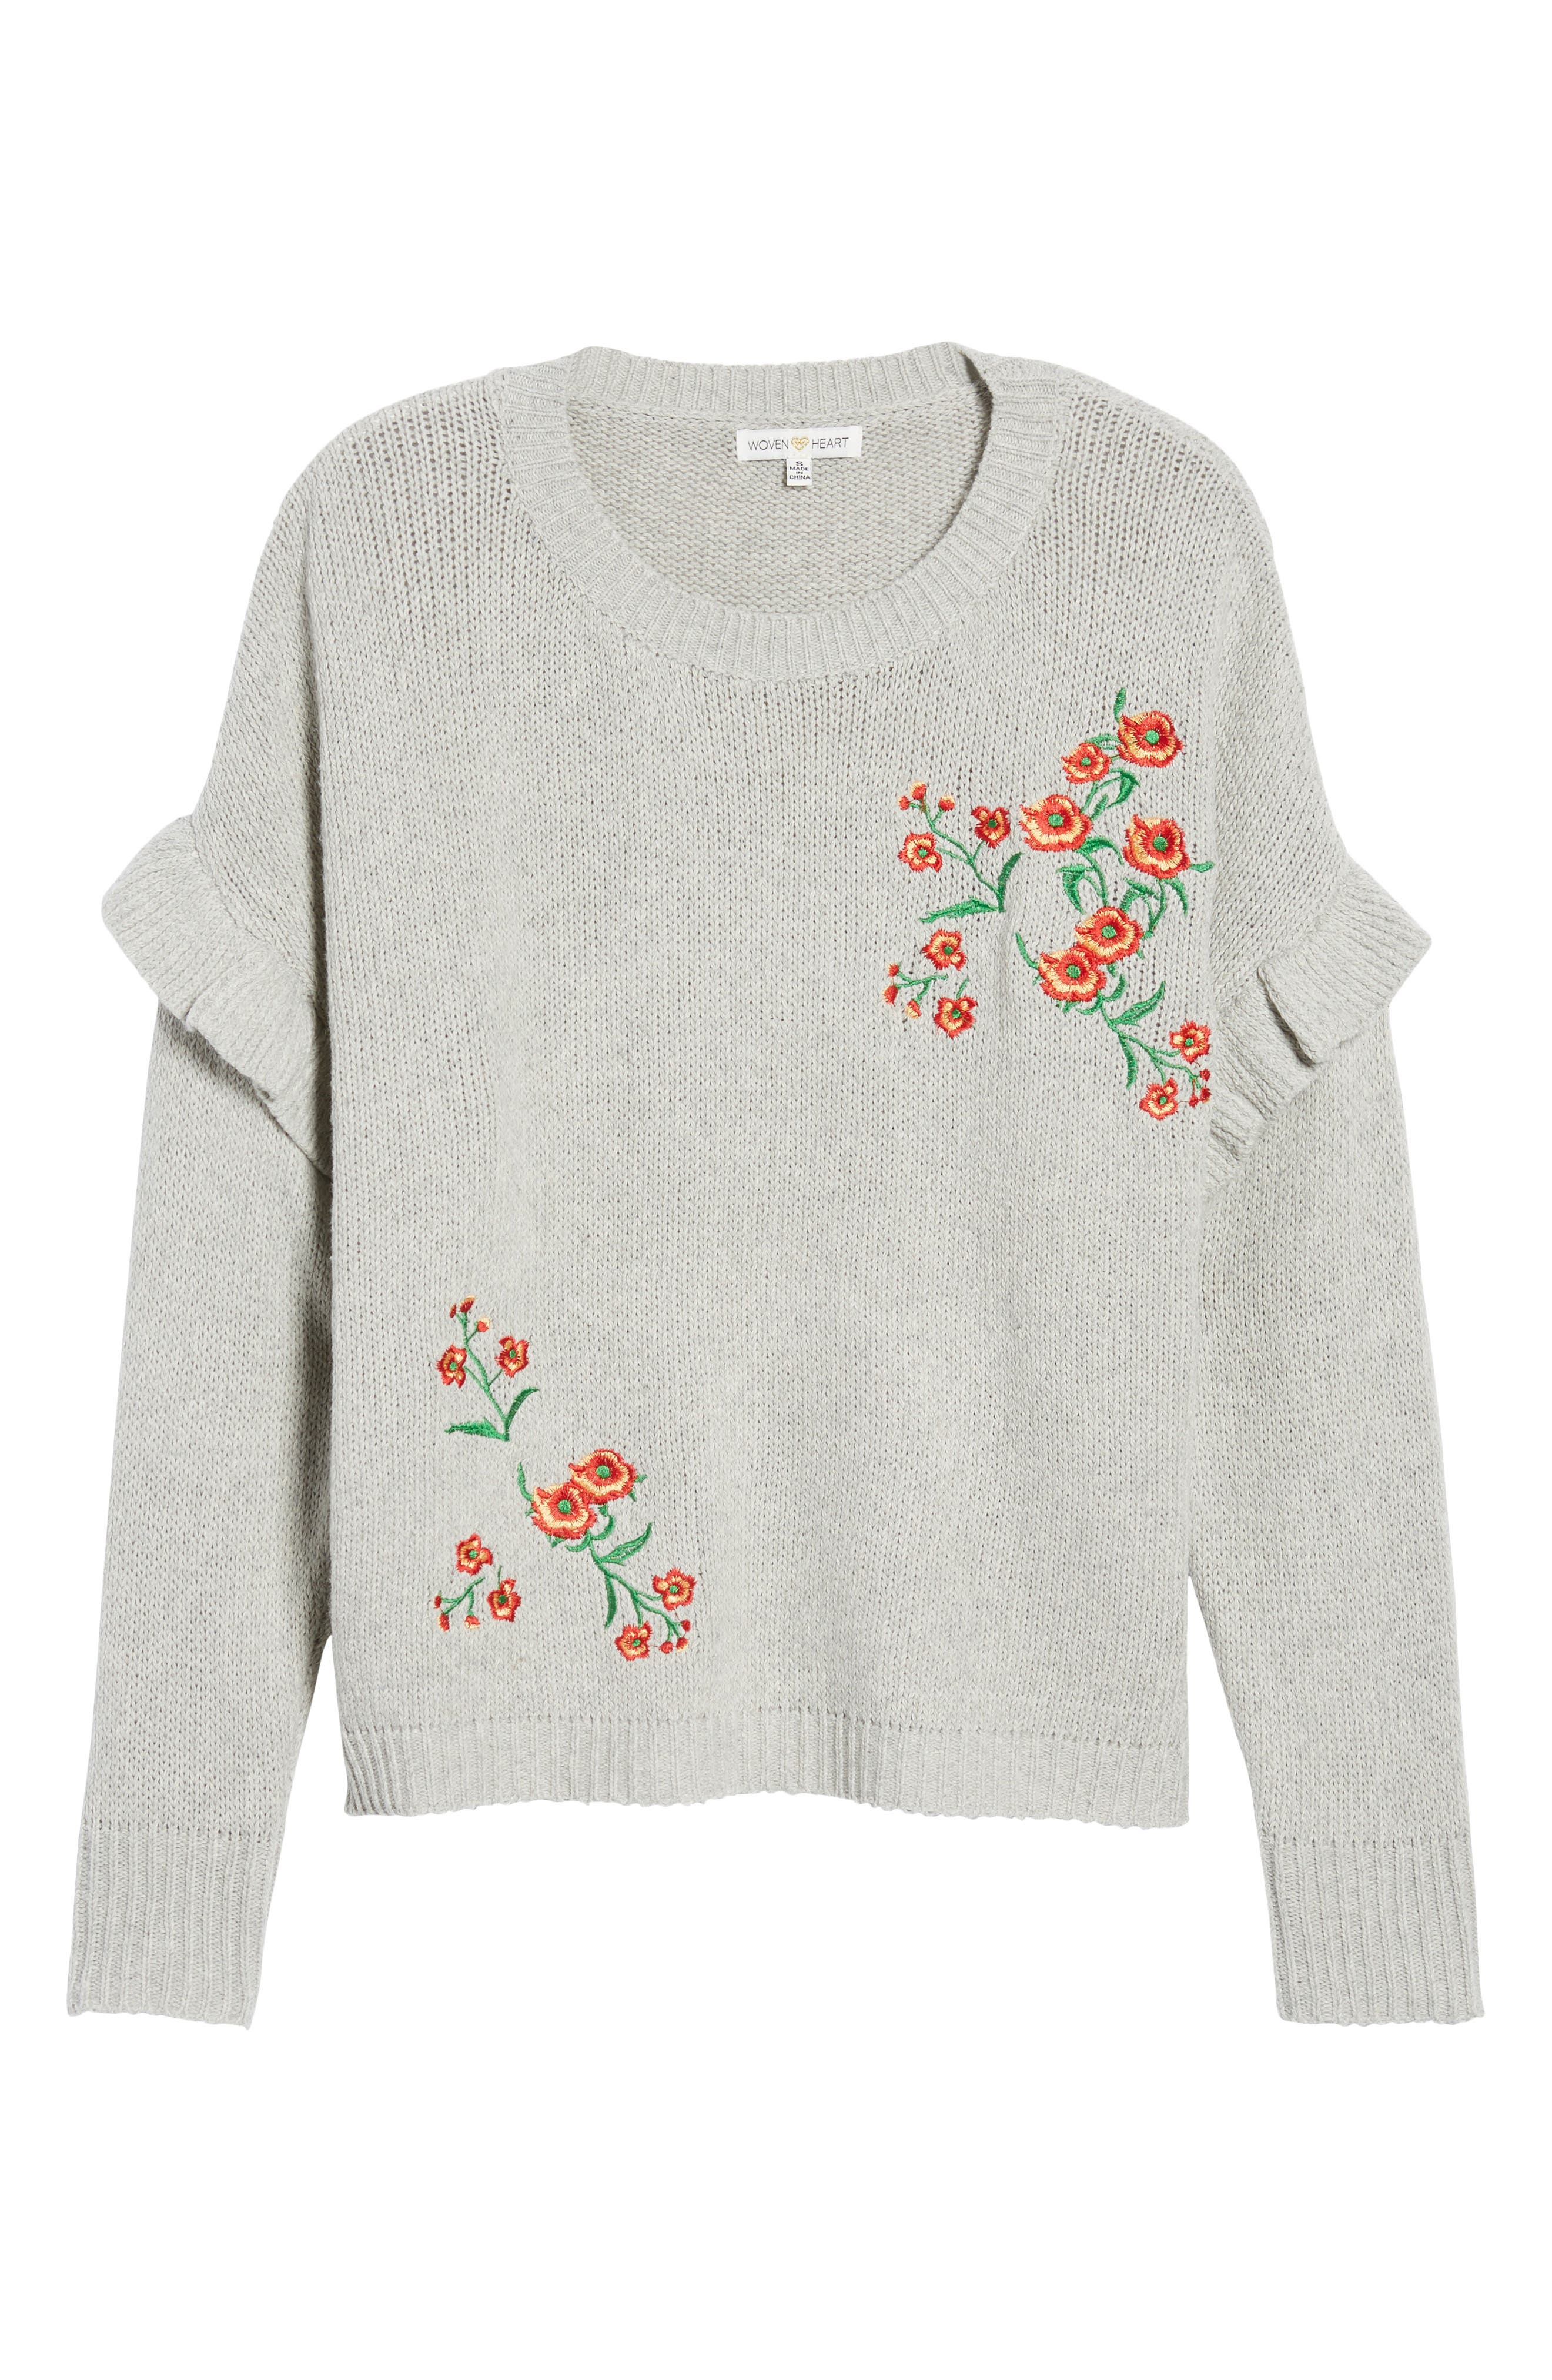 Ruffle Sleeve Embroidered Sweater,                             Alternate thumbnail 6, color,